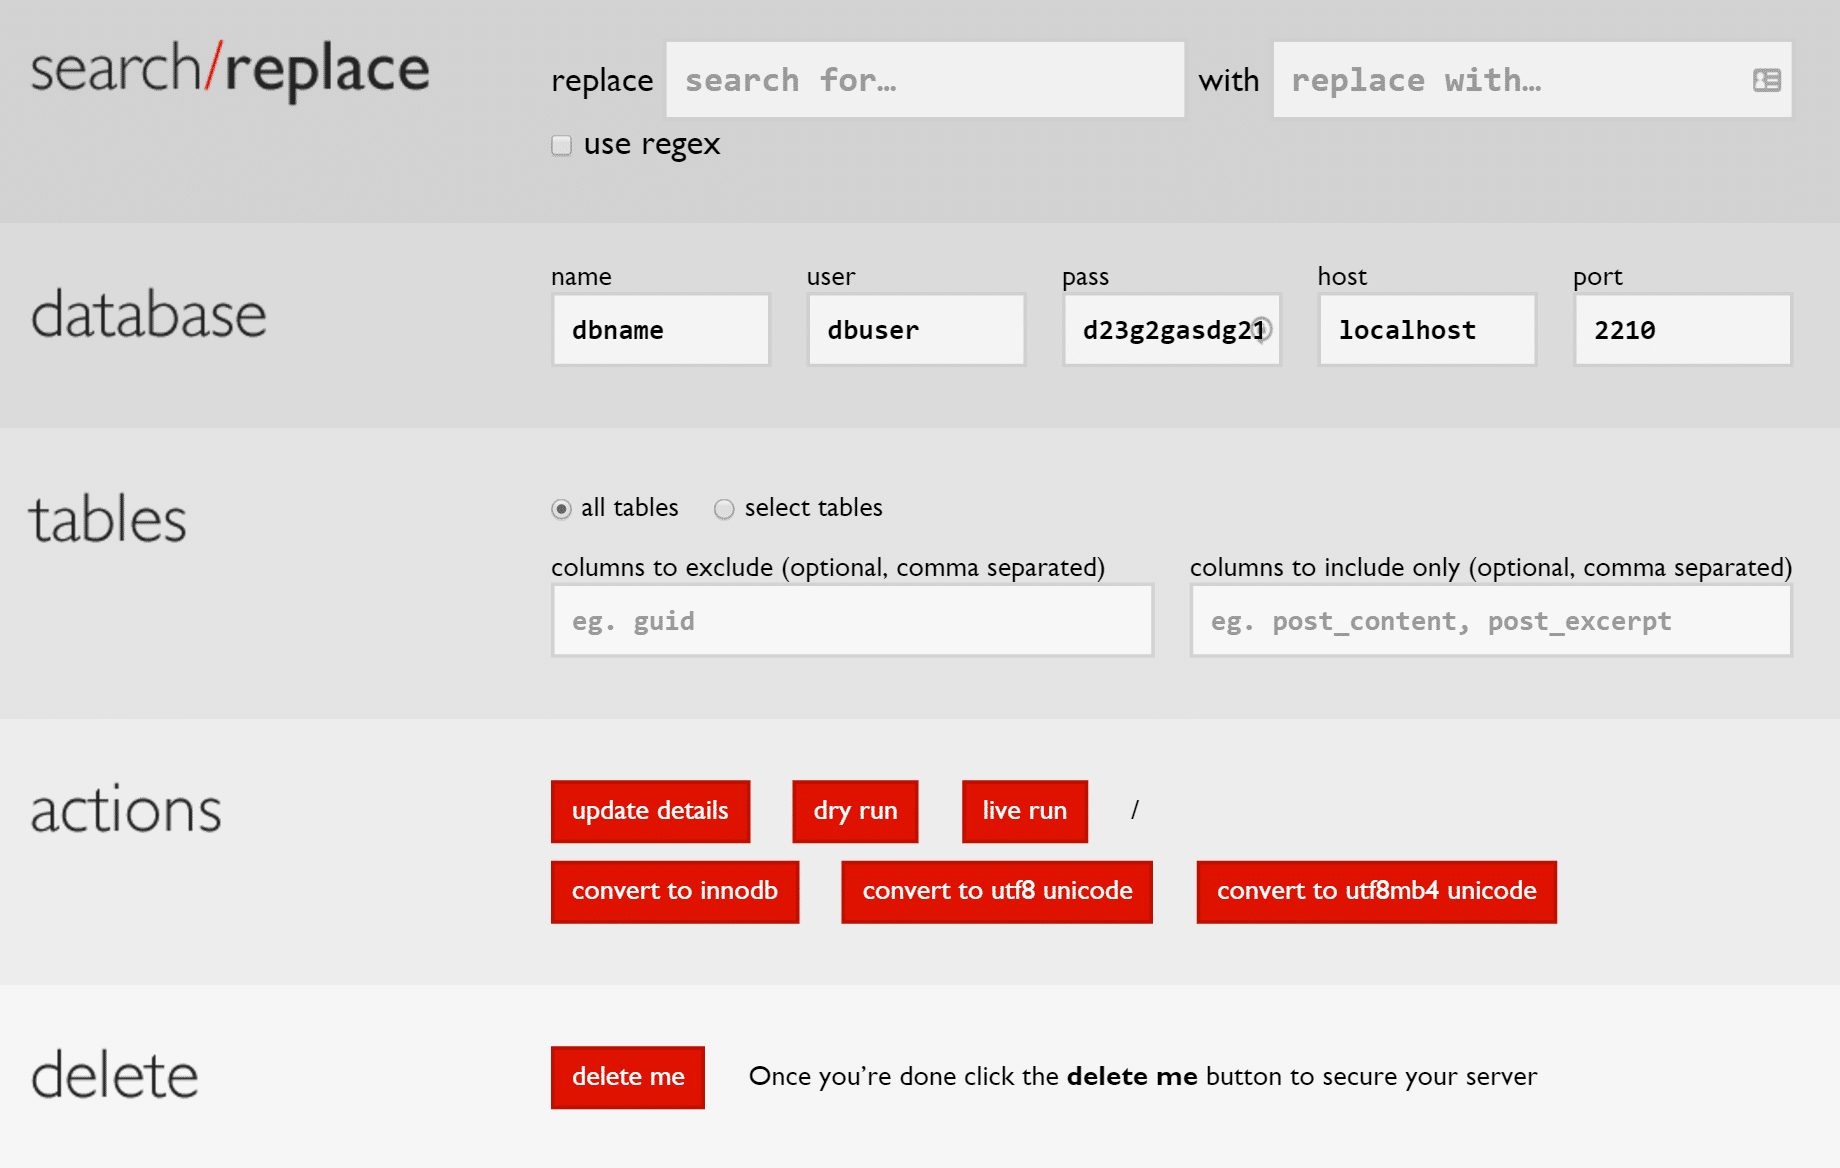 Options search replace